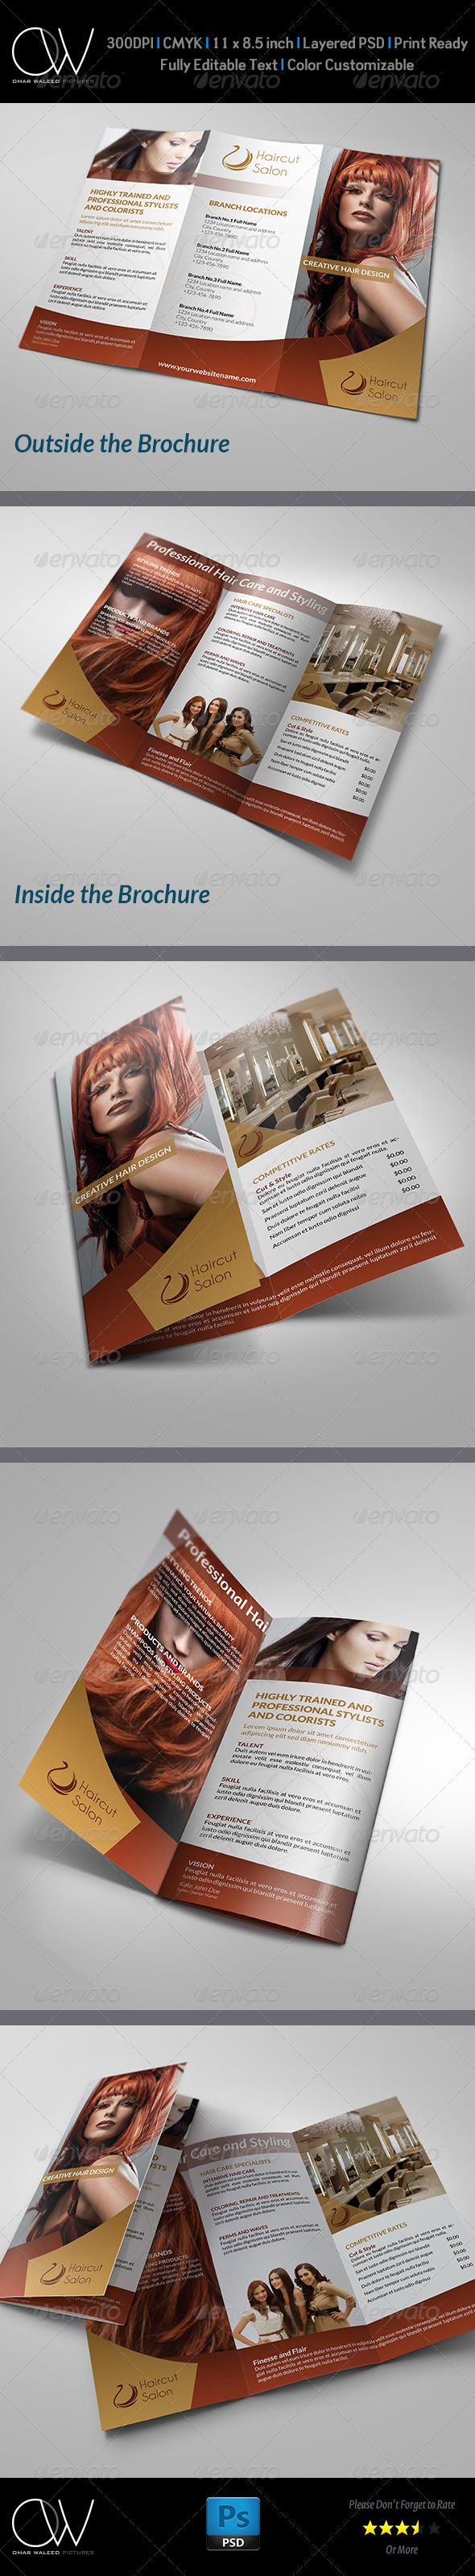 GraphicRiver Hair Stylist & Salon Tri-Fold Brochure 5038856